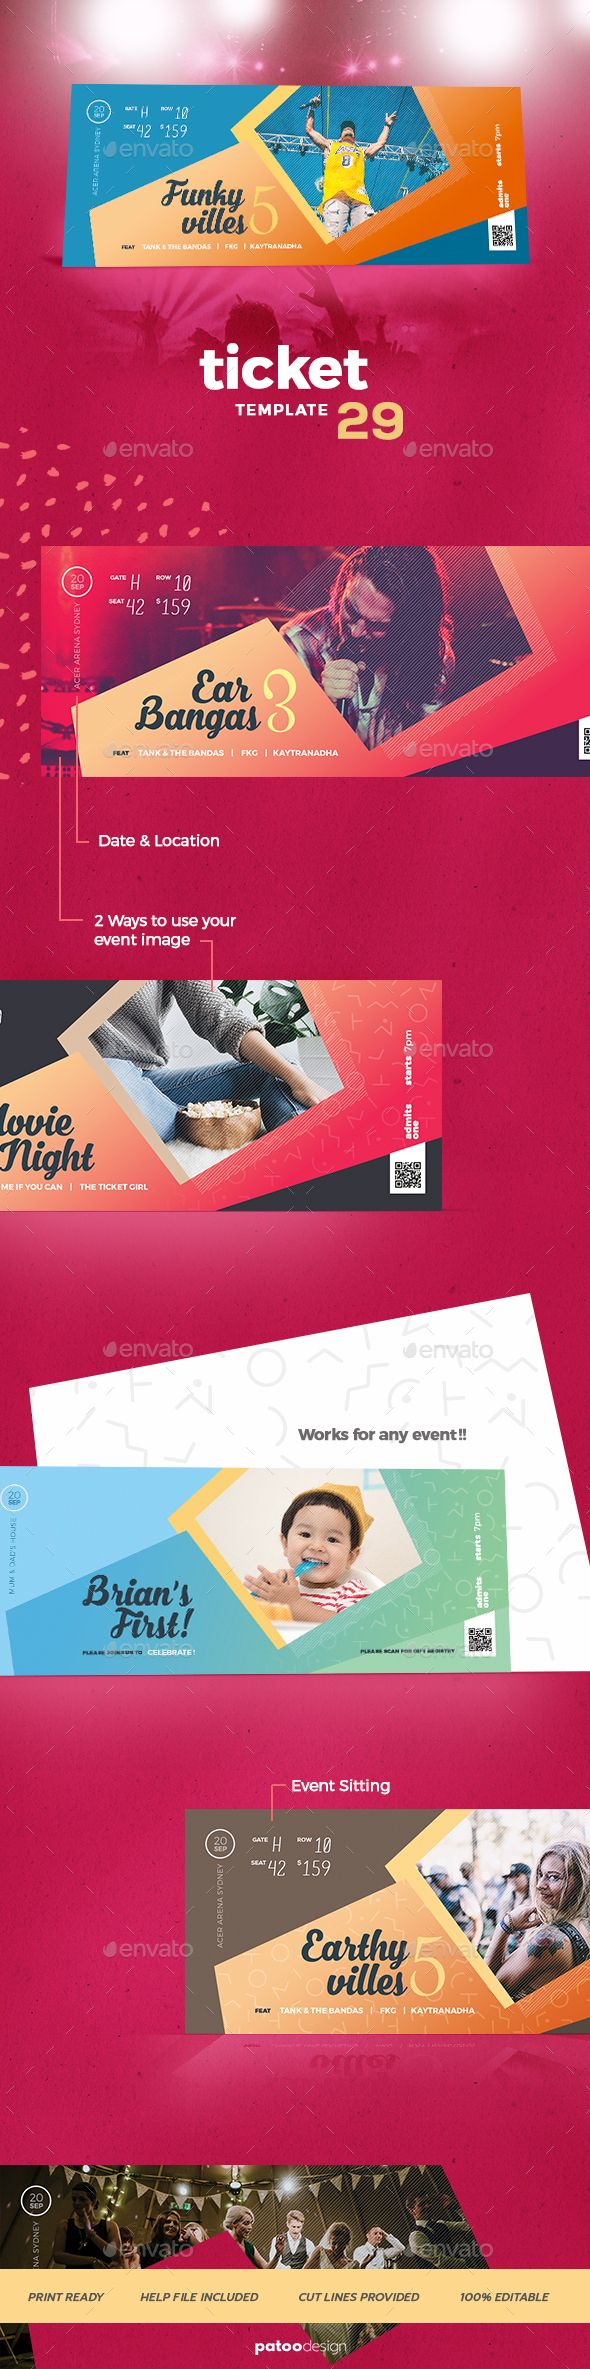 Event Tickets Template 29 — Photoshop PSD #karaoke #retro • Download ➝ https://graphicriver.net/item/event-tickets-template-29/20043876?ref=pxcr